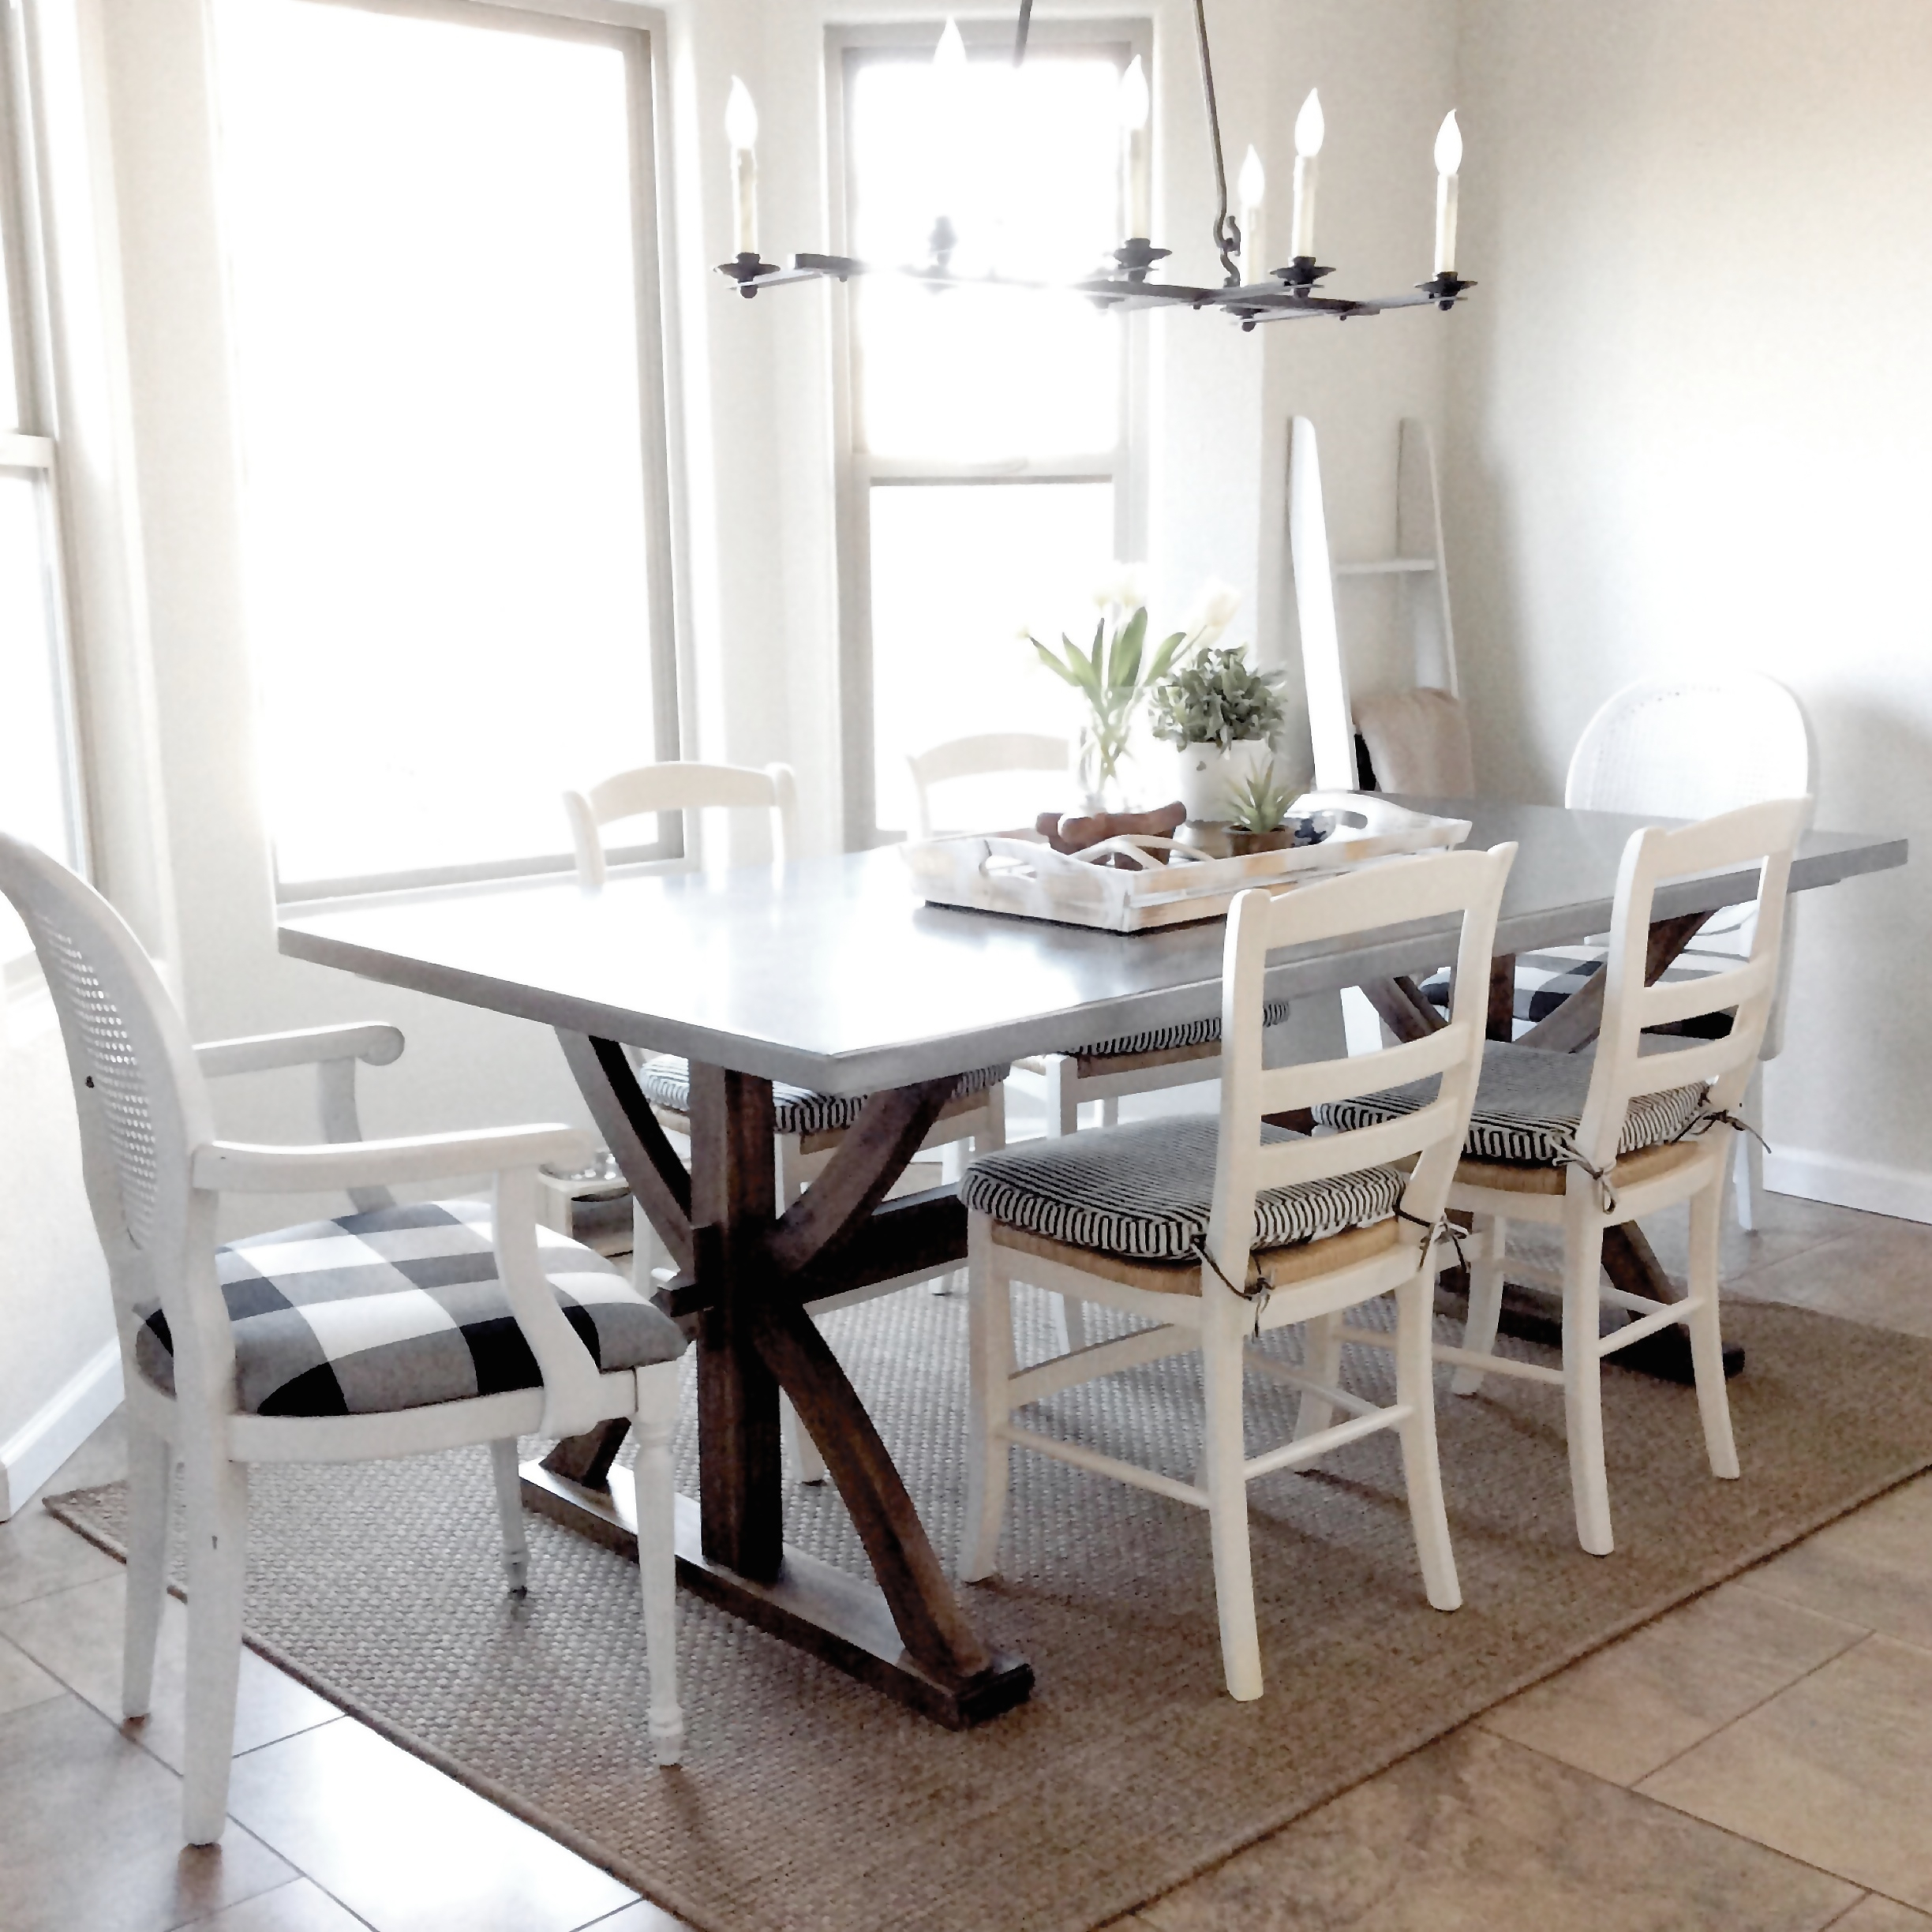 Before & After Aedriel Moxley House Tour : Dining Room